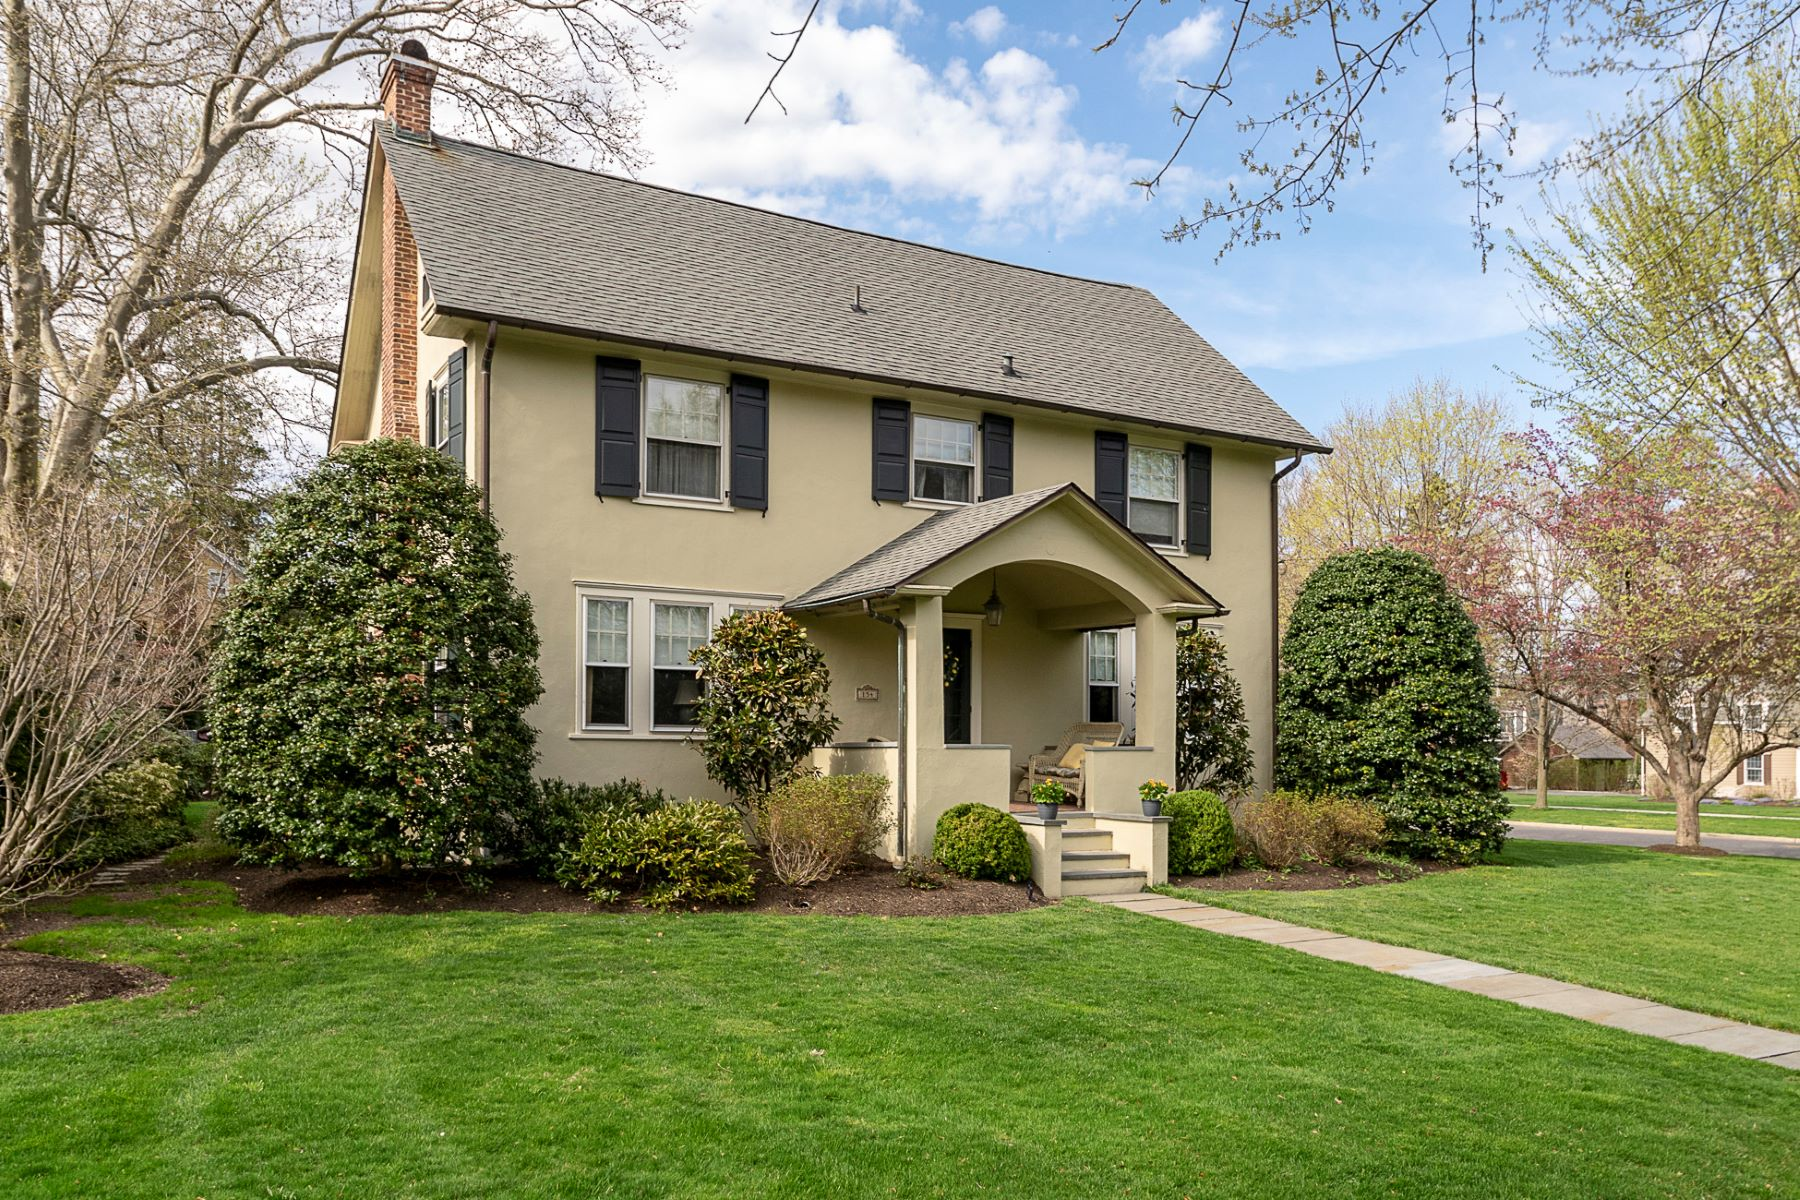 Single Family Home for Sale at Jugtown Home Does Not Skimp on Space or Style 154 Prospect Avenue, Princeton, New Jersey 08540 United StatesMunicipality: Princeton